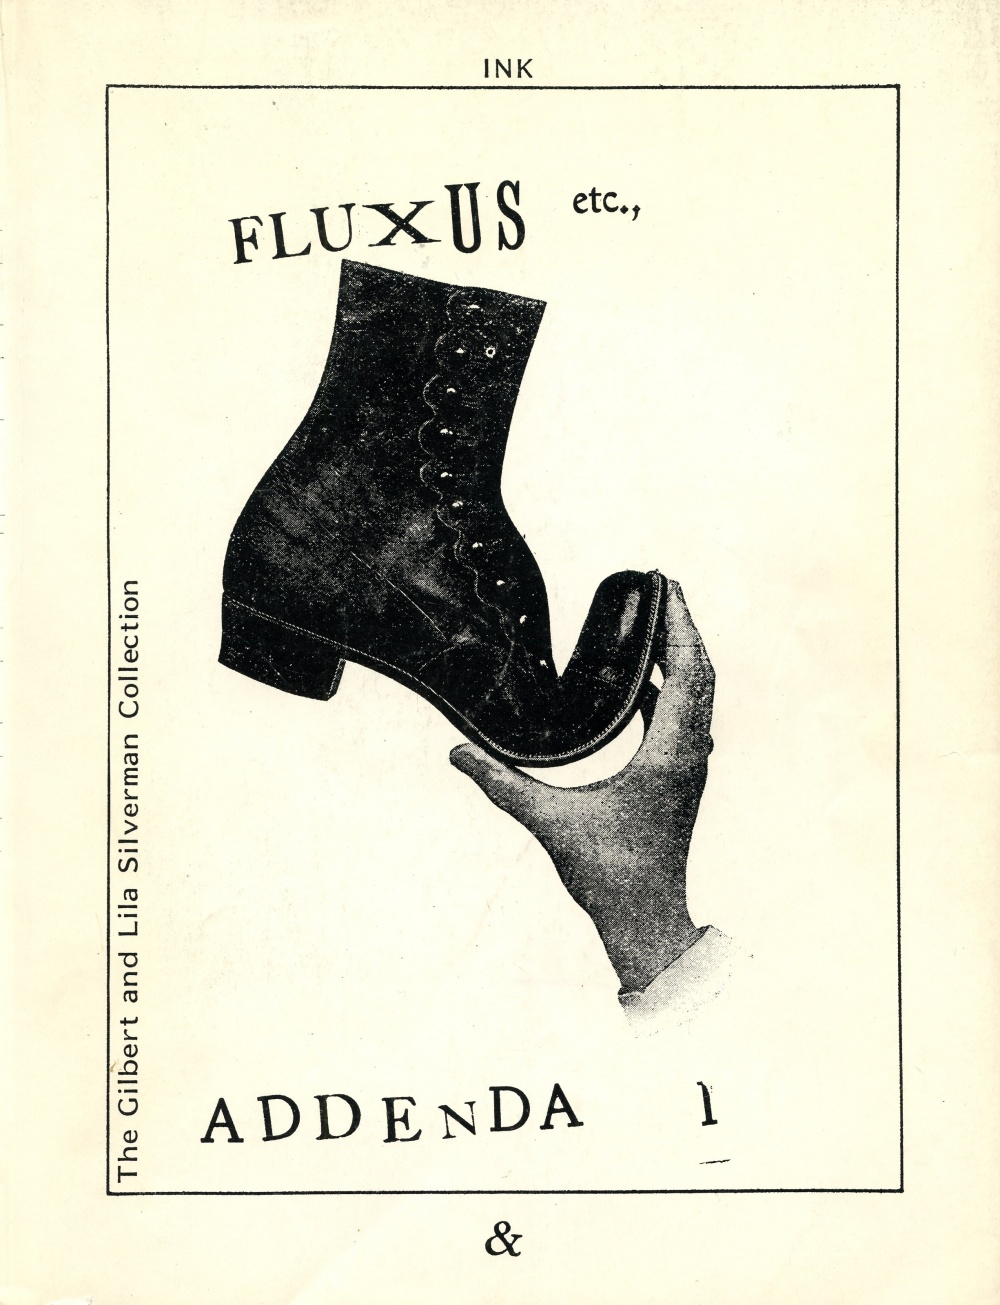 Fluxus etc. : addenda 1 : the Gilbert and Lila Silverman Collect